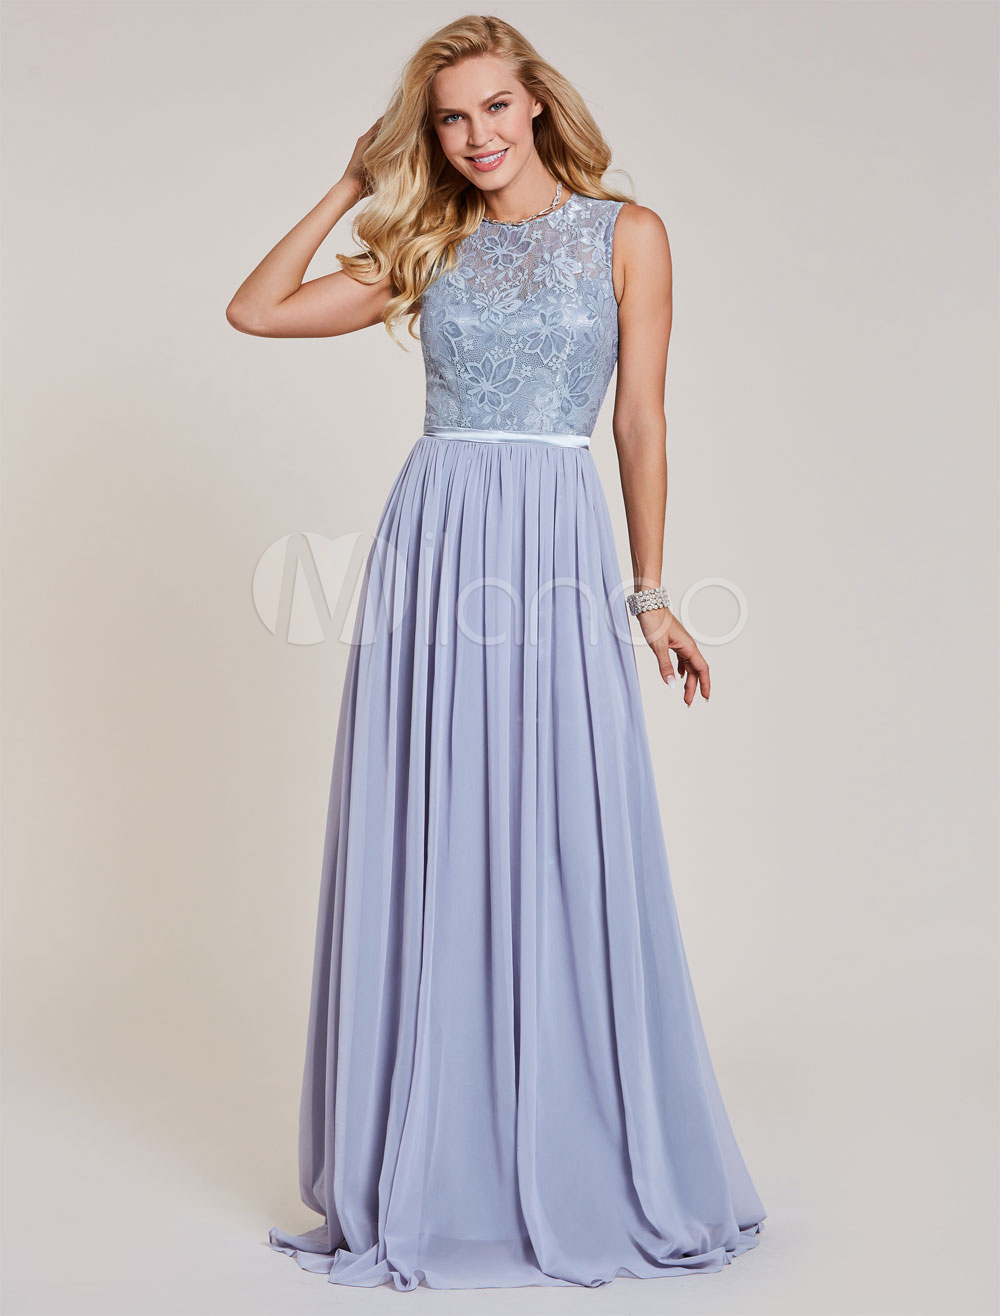 Buy Long Prom Dresses Lace Chiffon Sleeveless Illusion Sash Floor Length Formal Gowns for $79.19 in Milanoo store